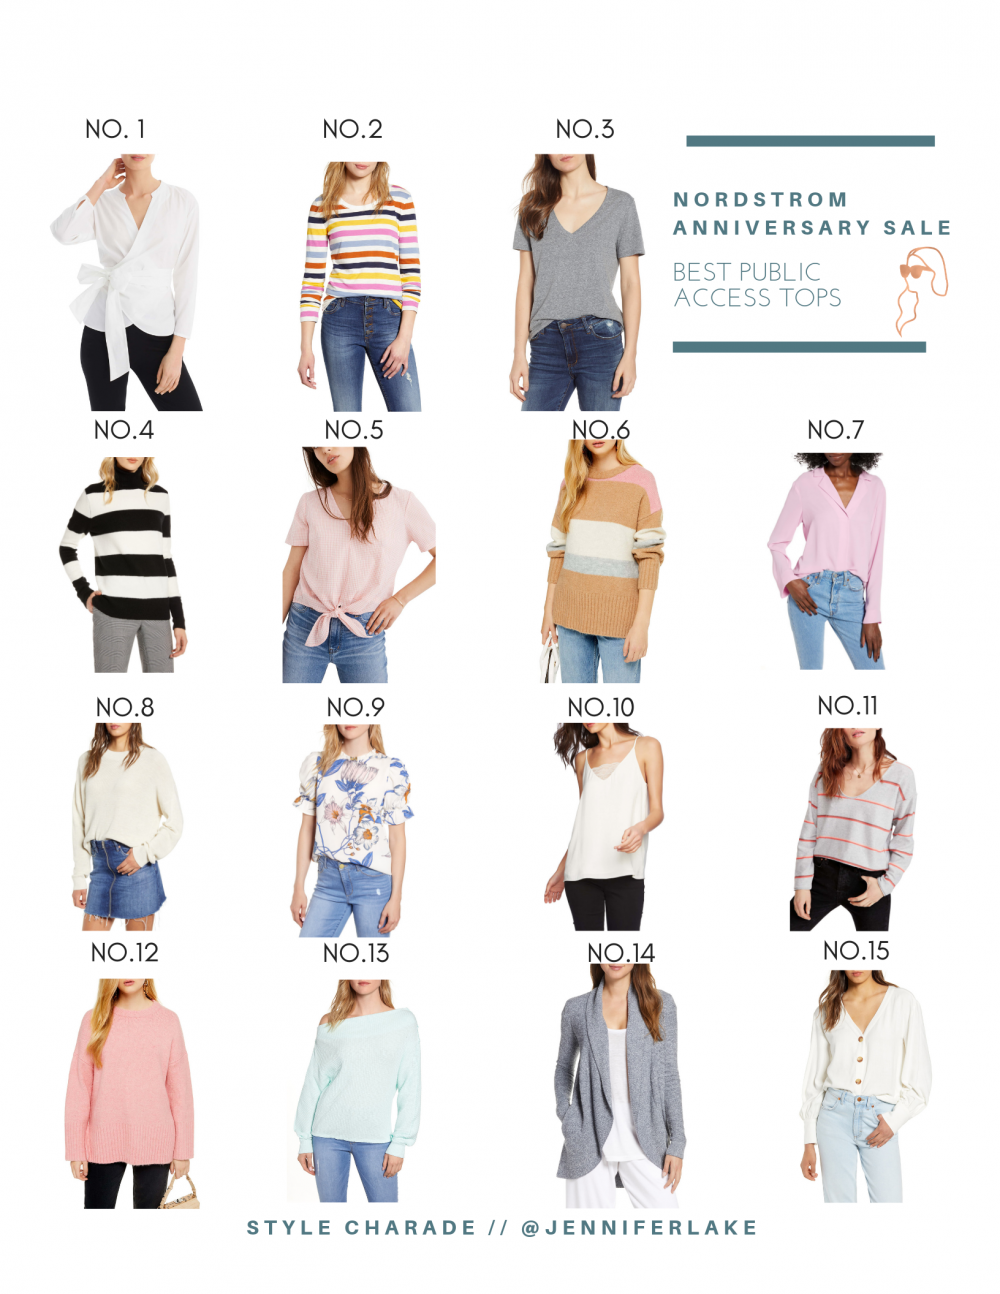 Nordstrom Anniversary Sale Public Access Tops